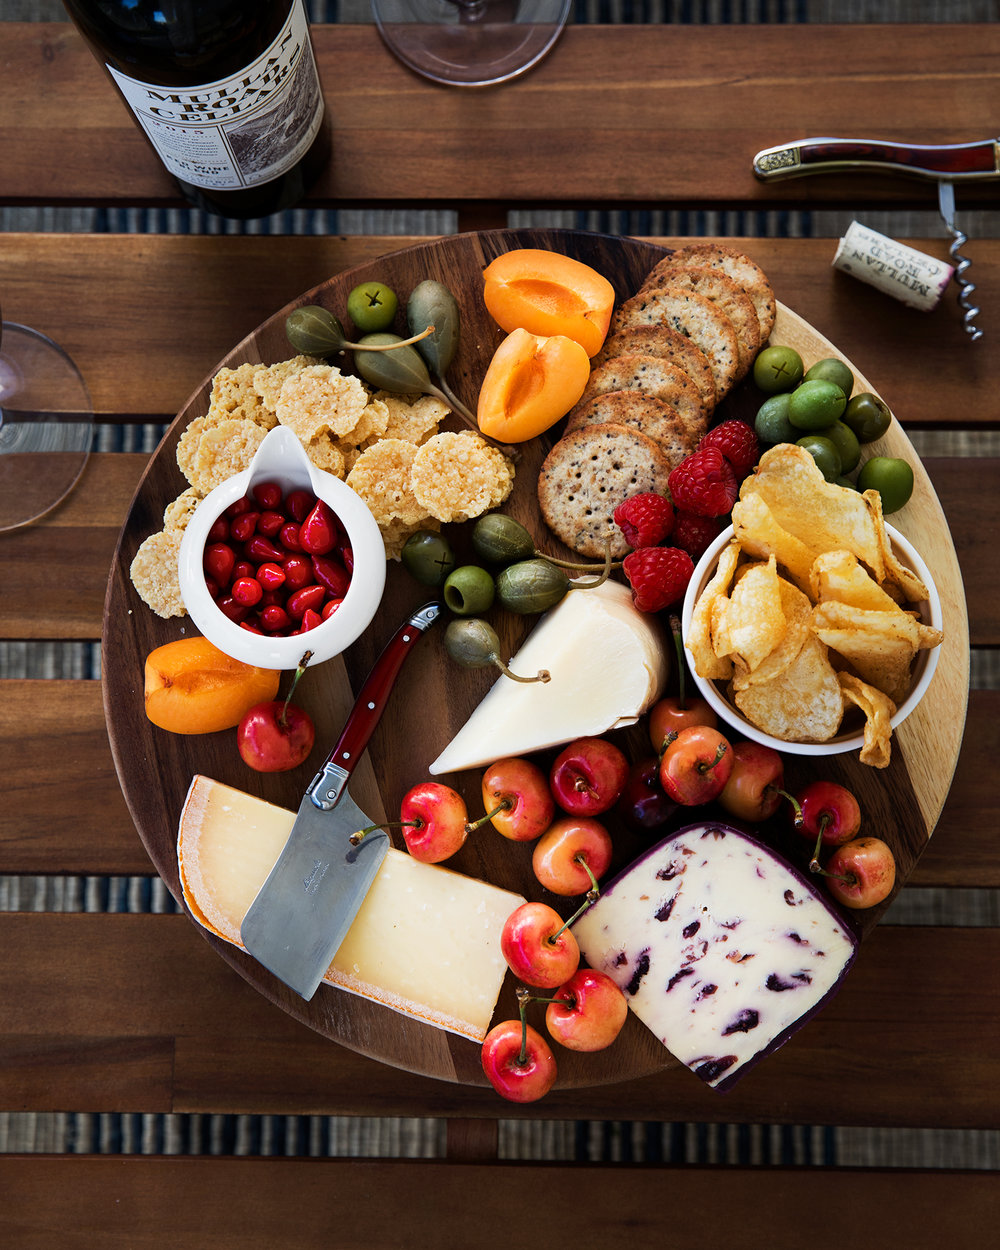 Wine + Cheese Pairing Inspiration